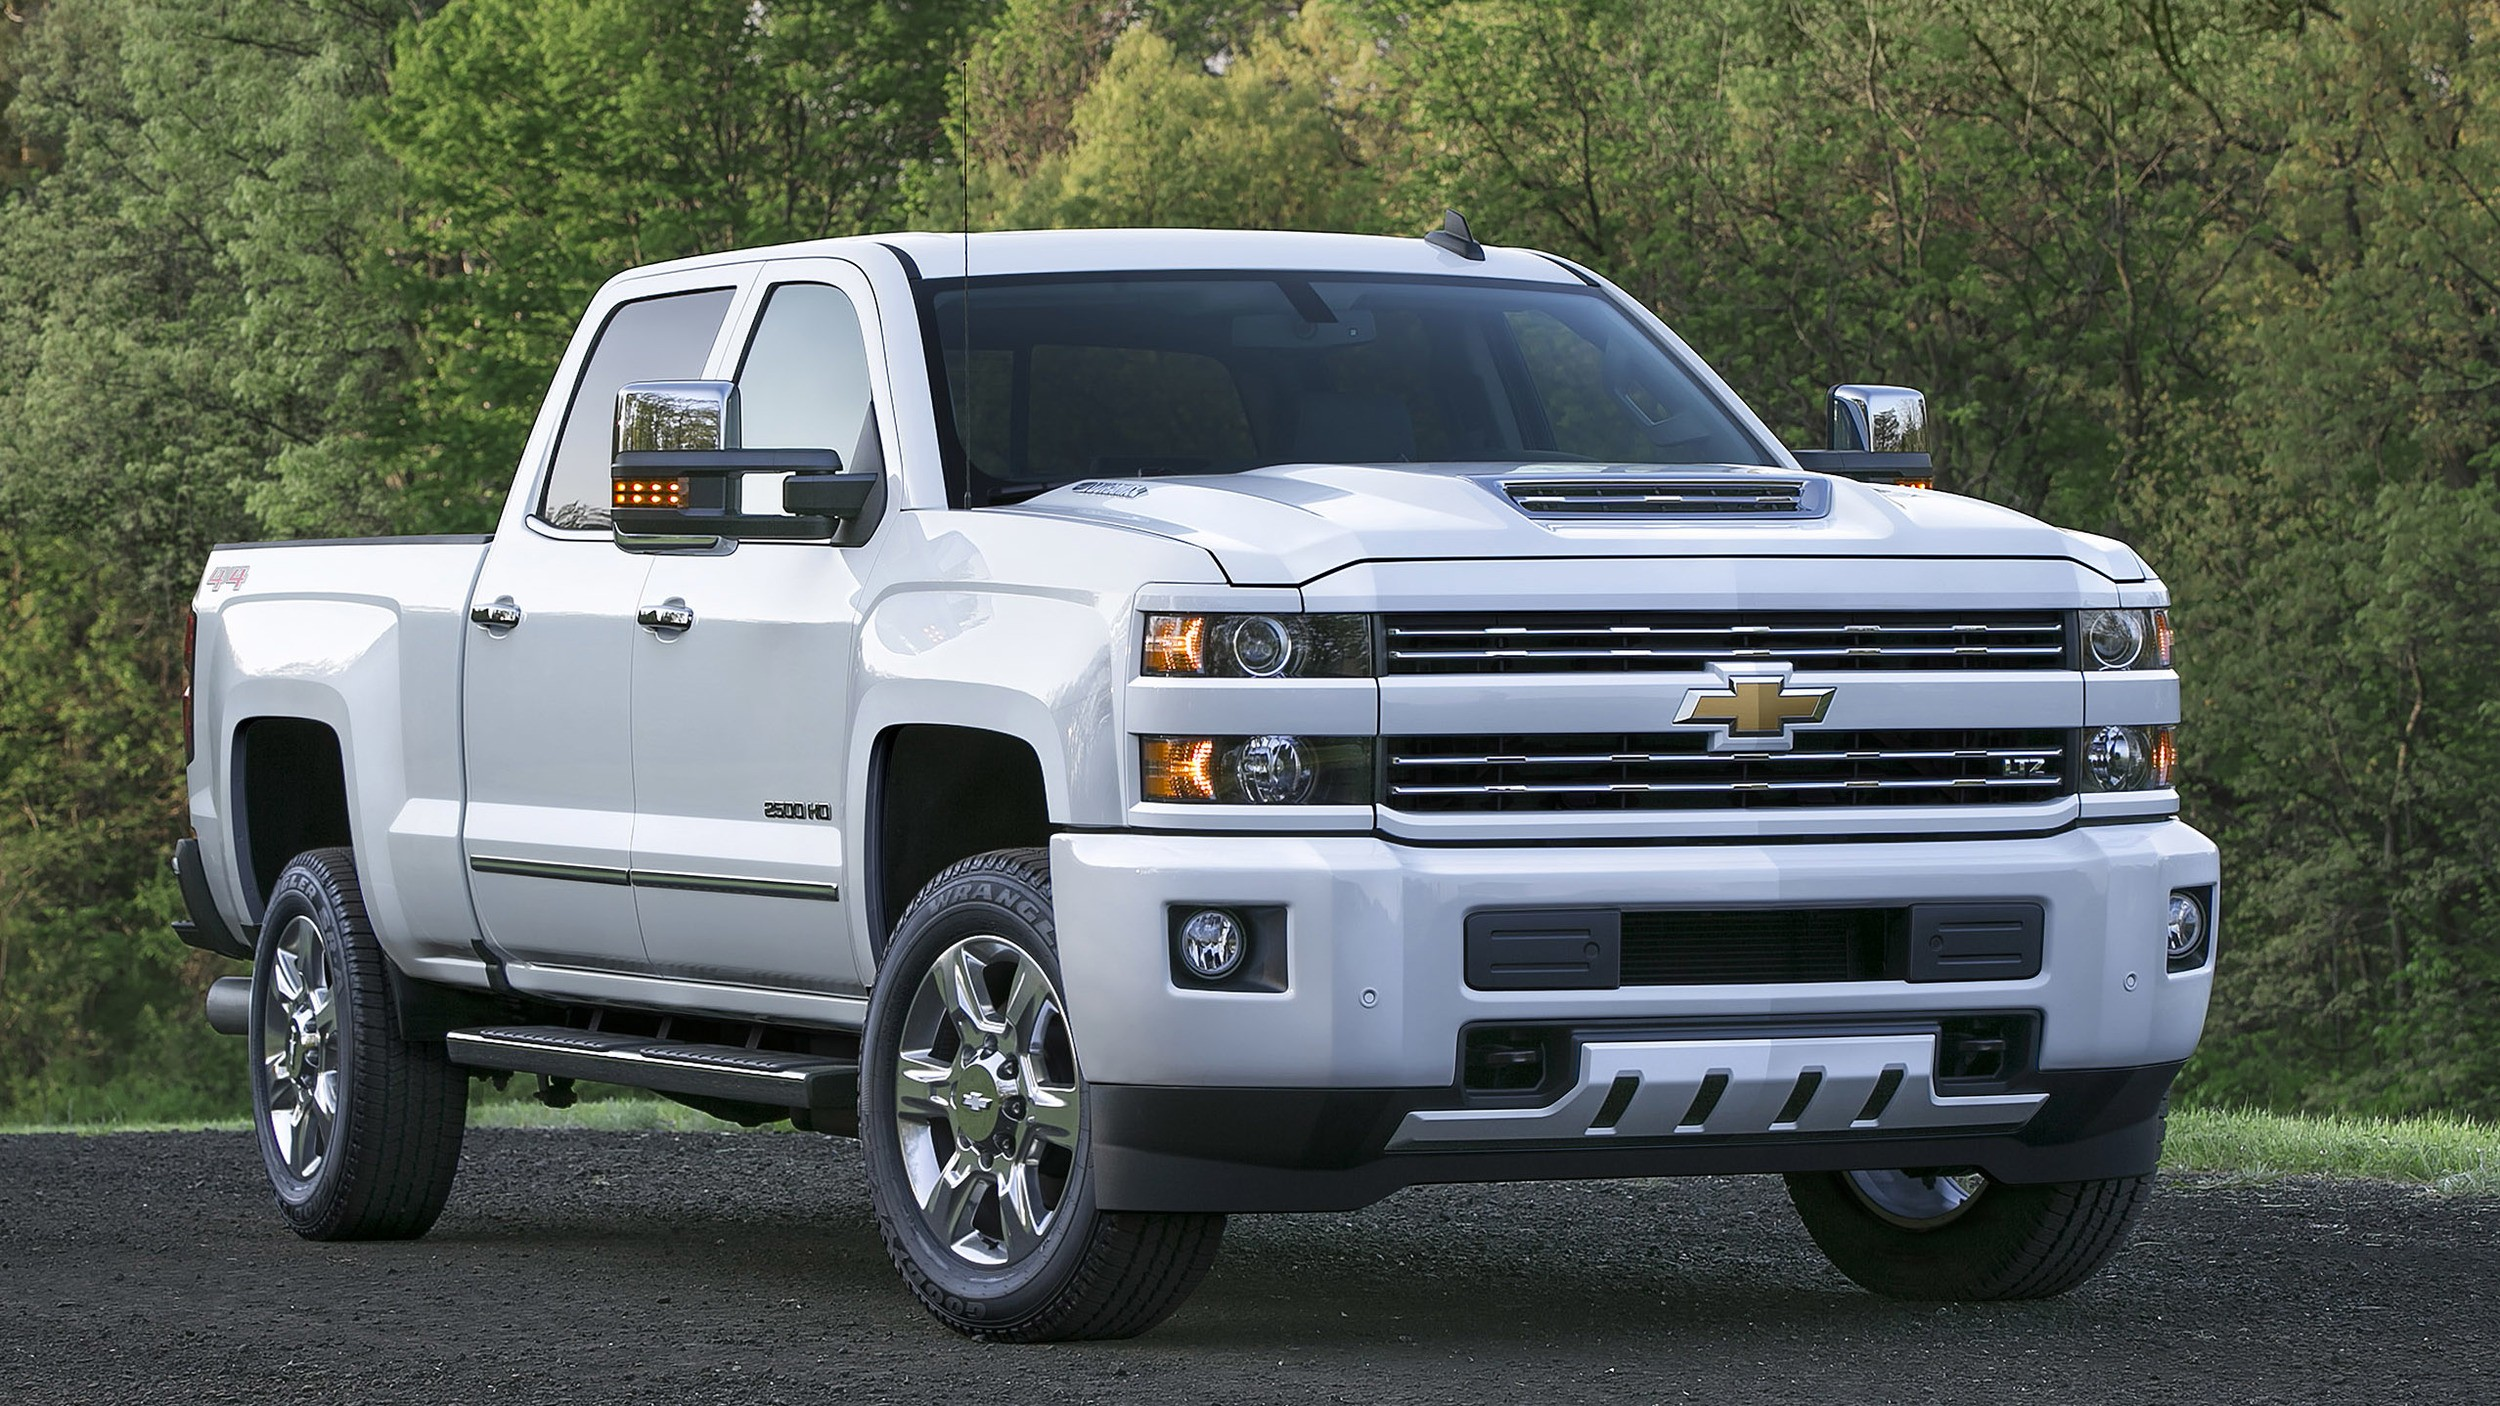 L5p Duramax Diesel Output Leaked 445 Horsepower 910 Lb Ft Of Chevy Fuel Filter Housing Torque